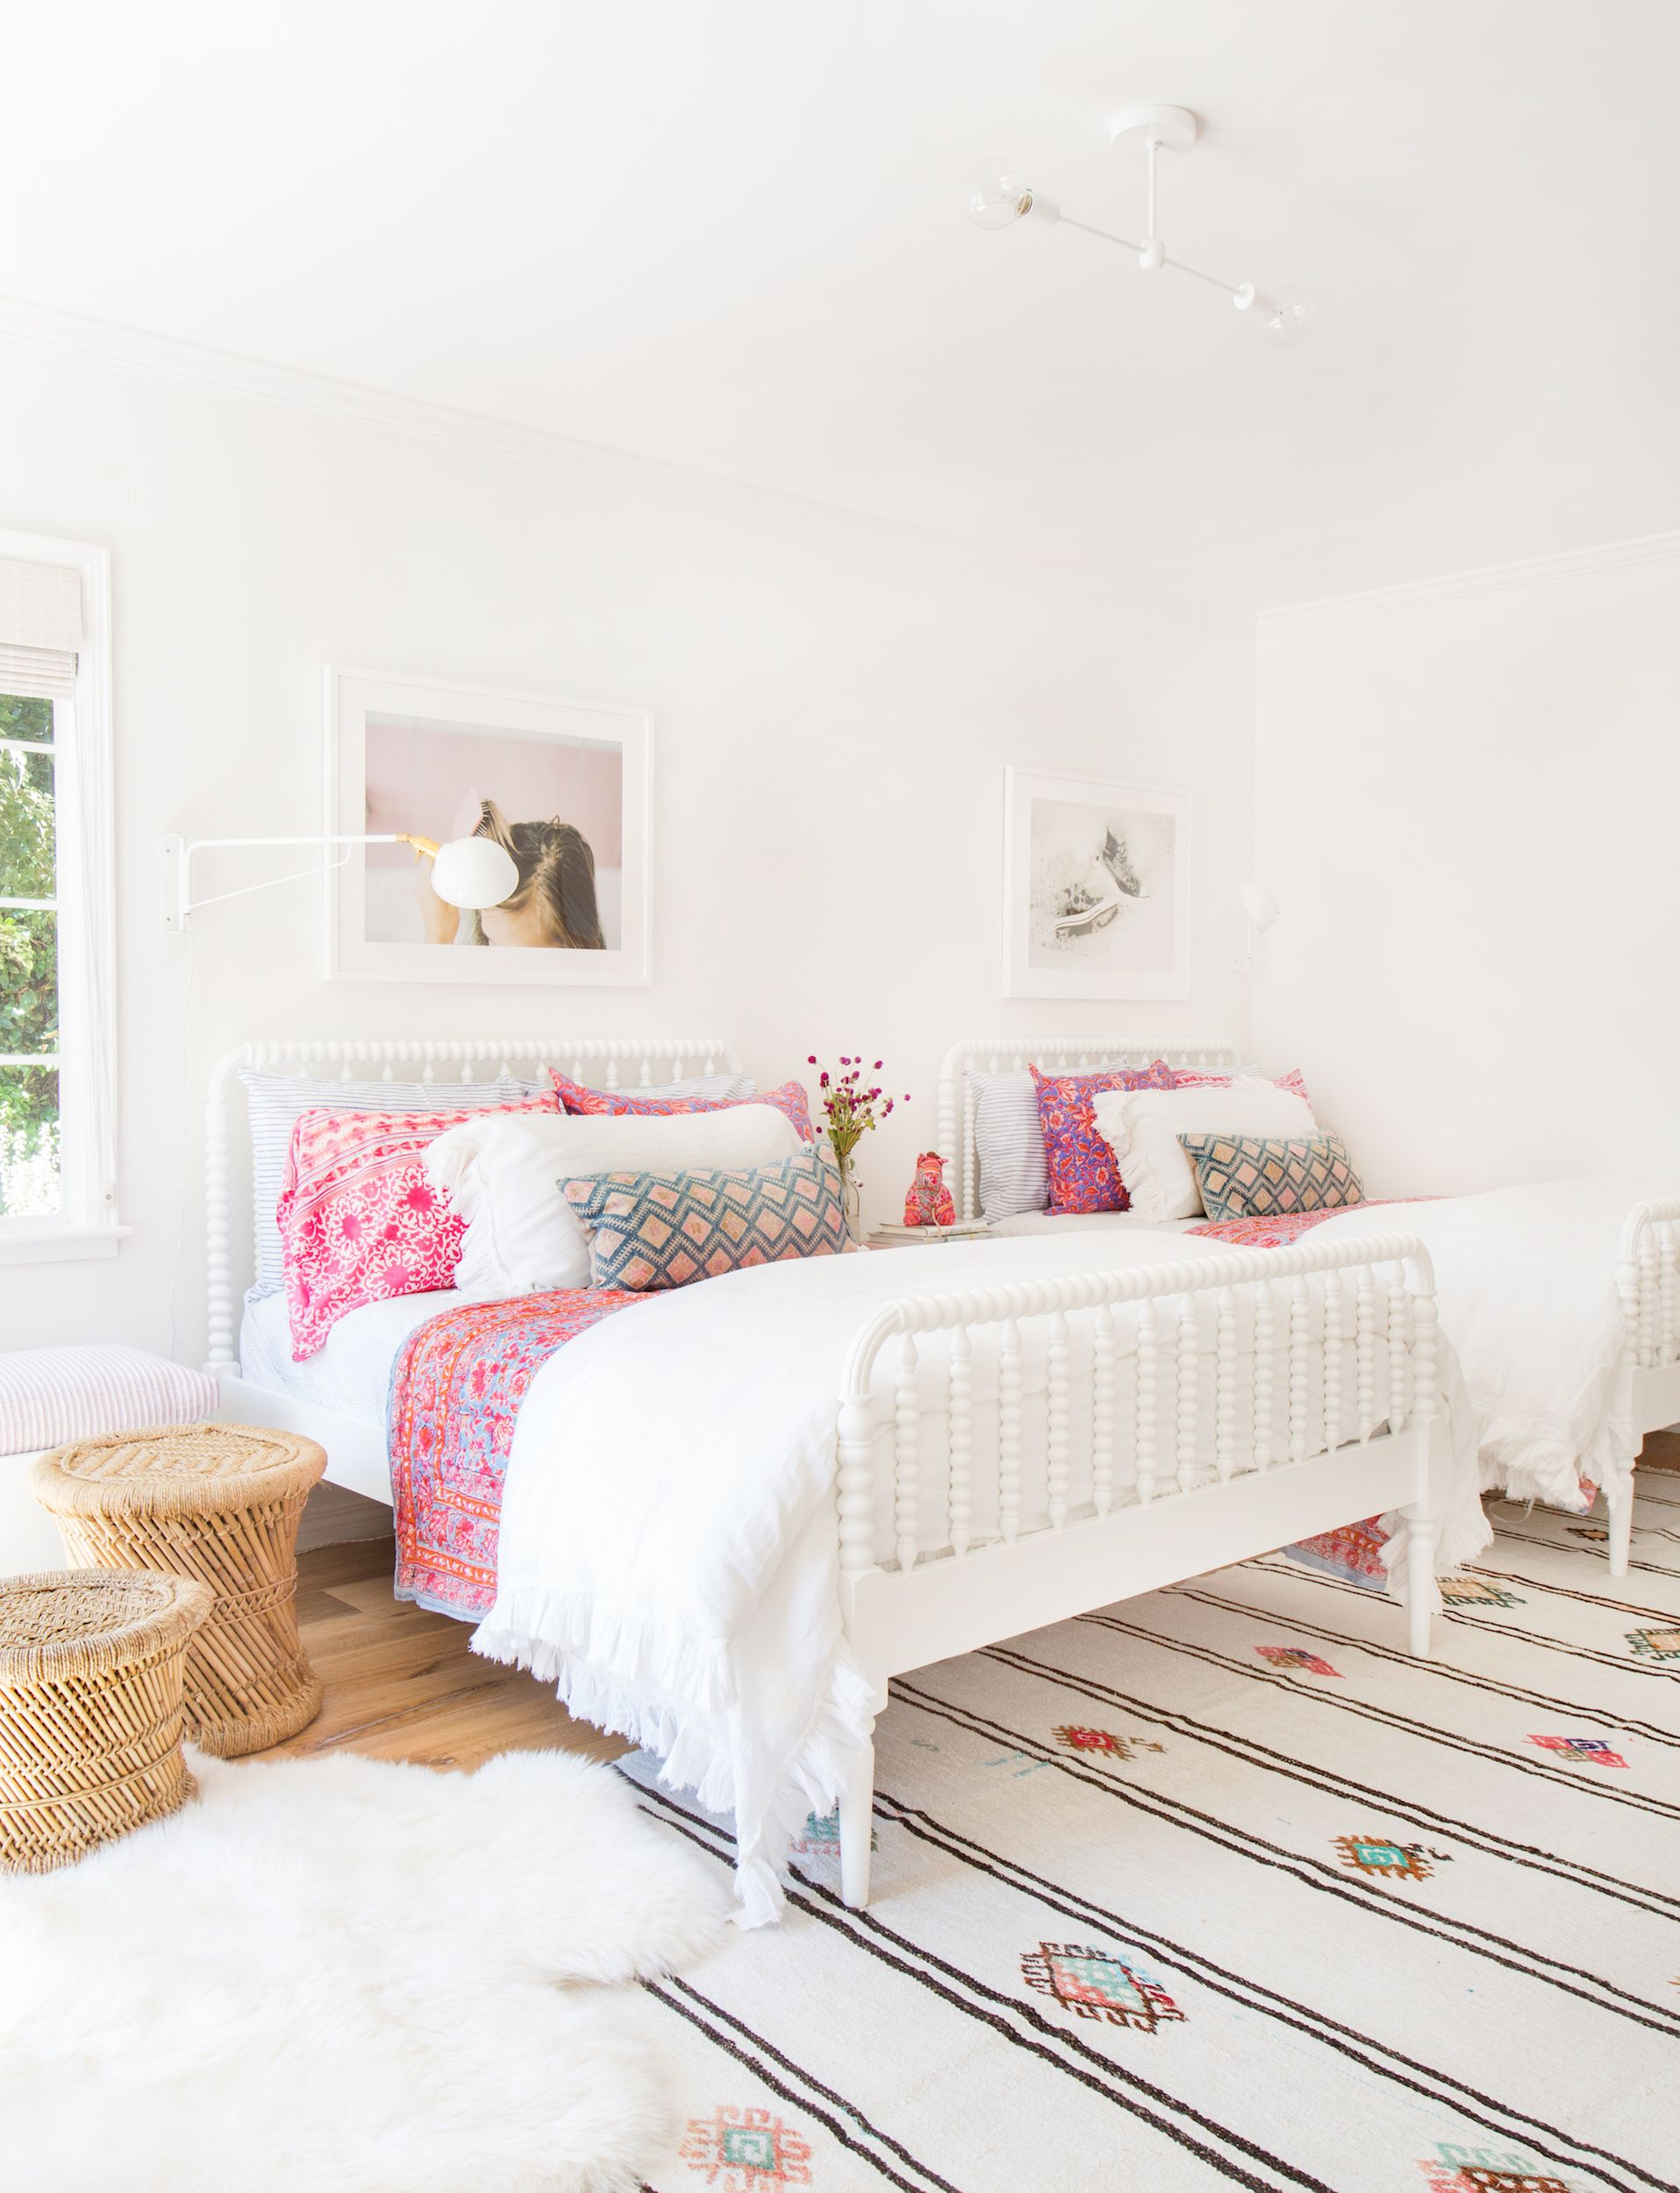 11 Best Teen Bedroom Ideas - Cool Teenage Room Decor for ... on Best Rooms For Girls  id=85109